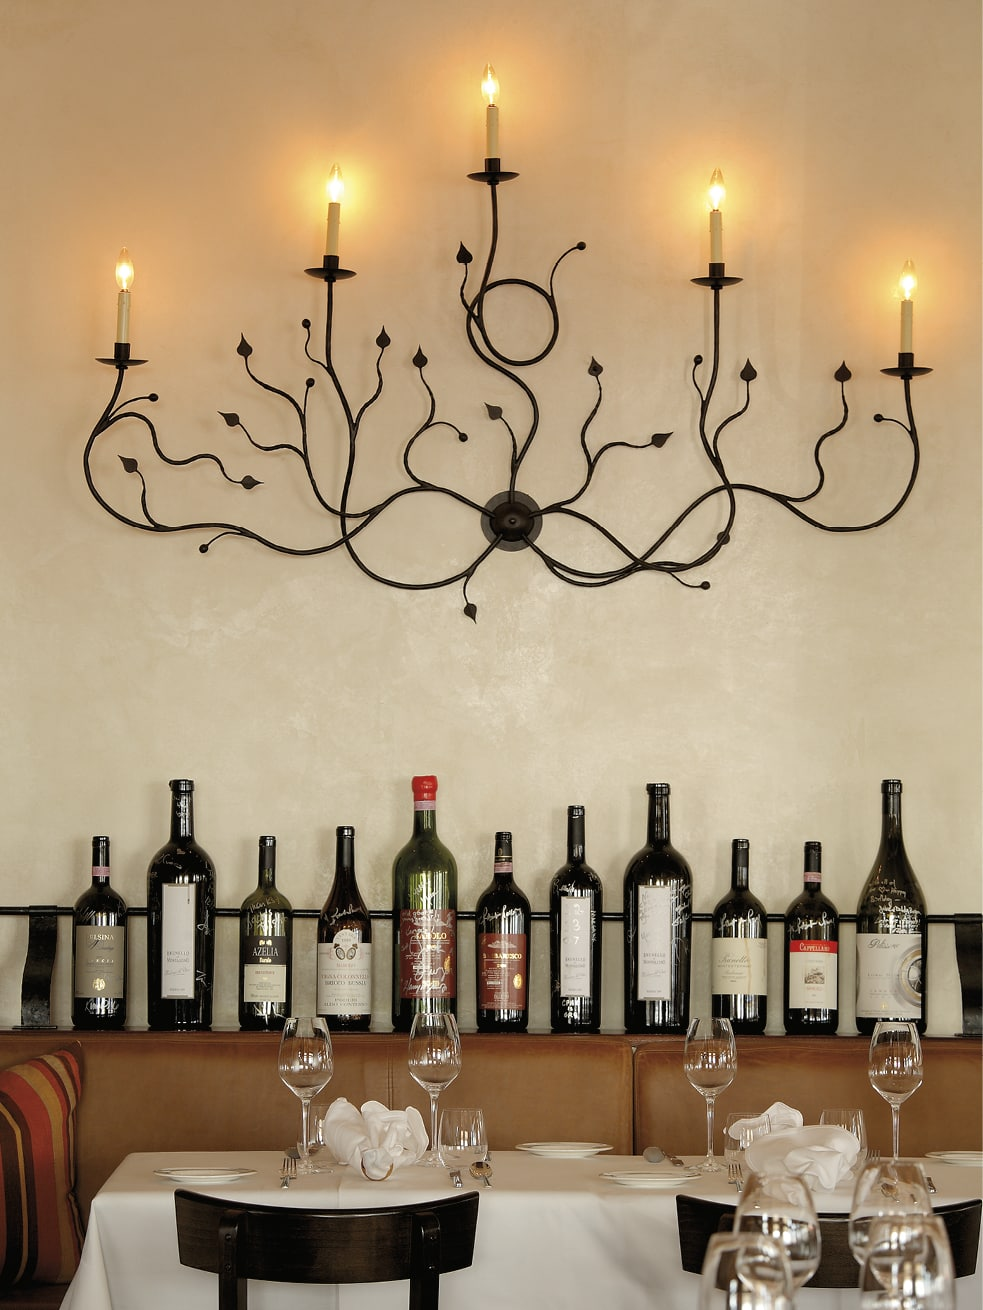 An elaborate wall sconce with wine bottles underneath